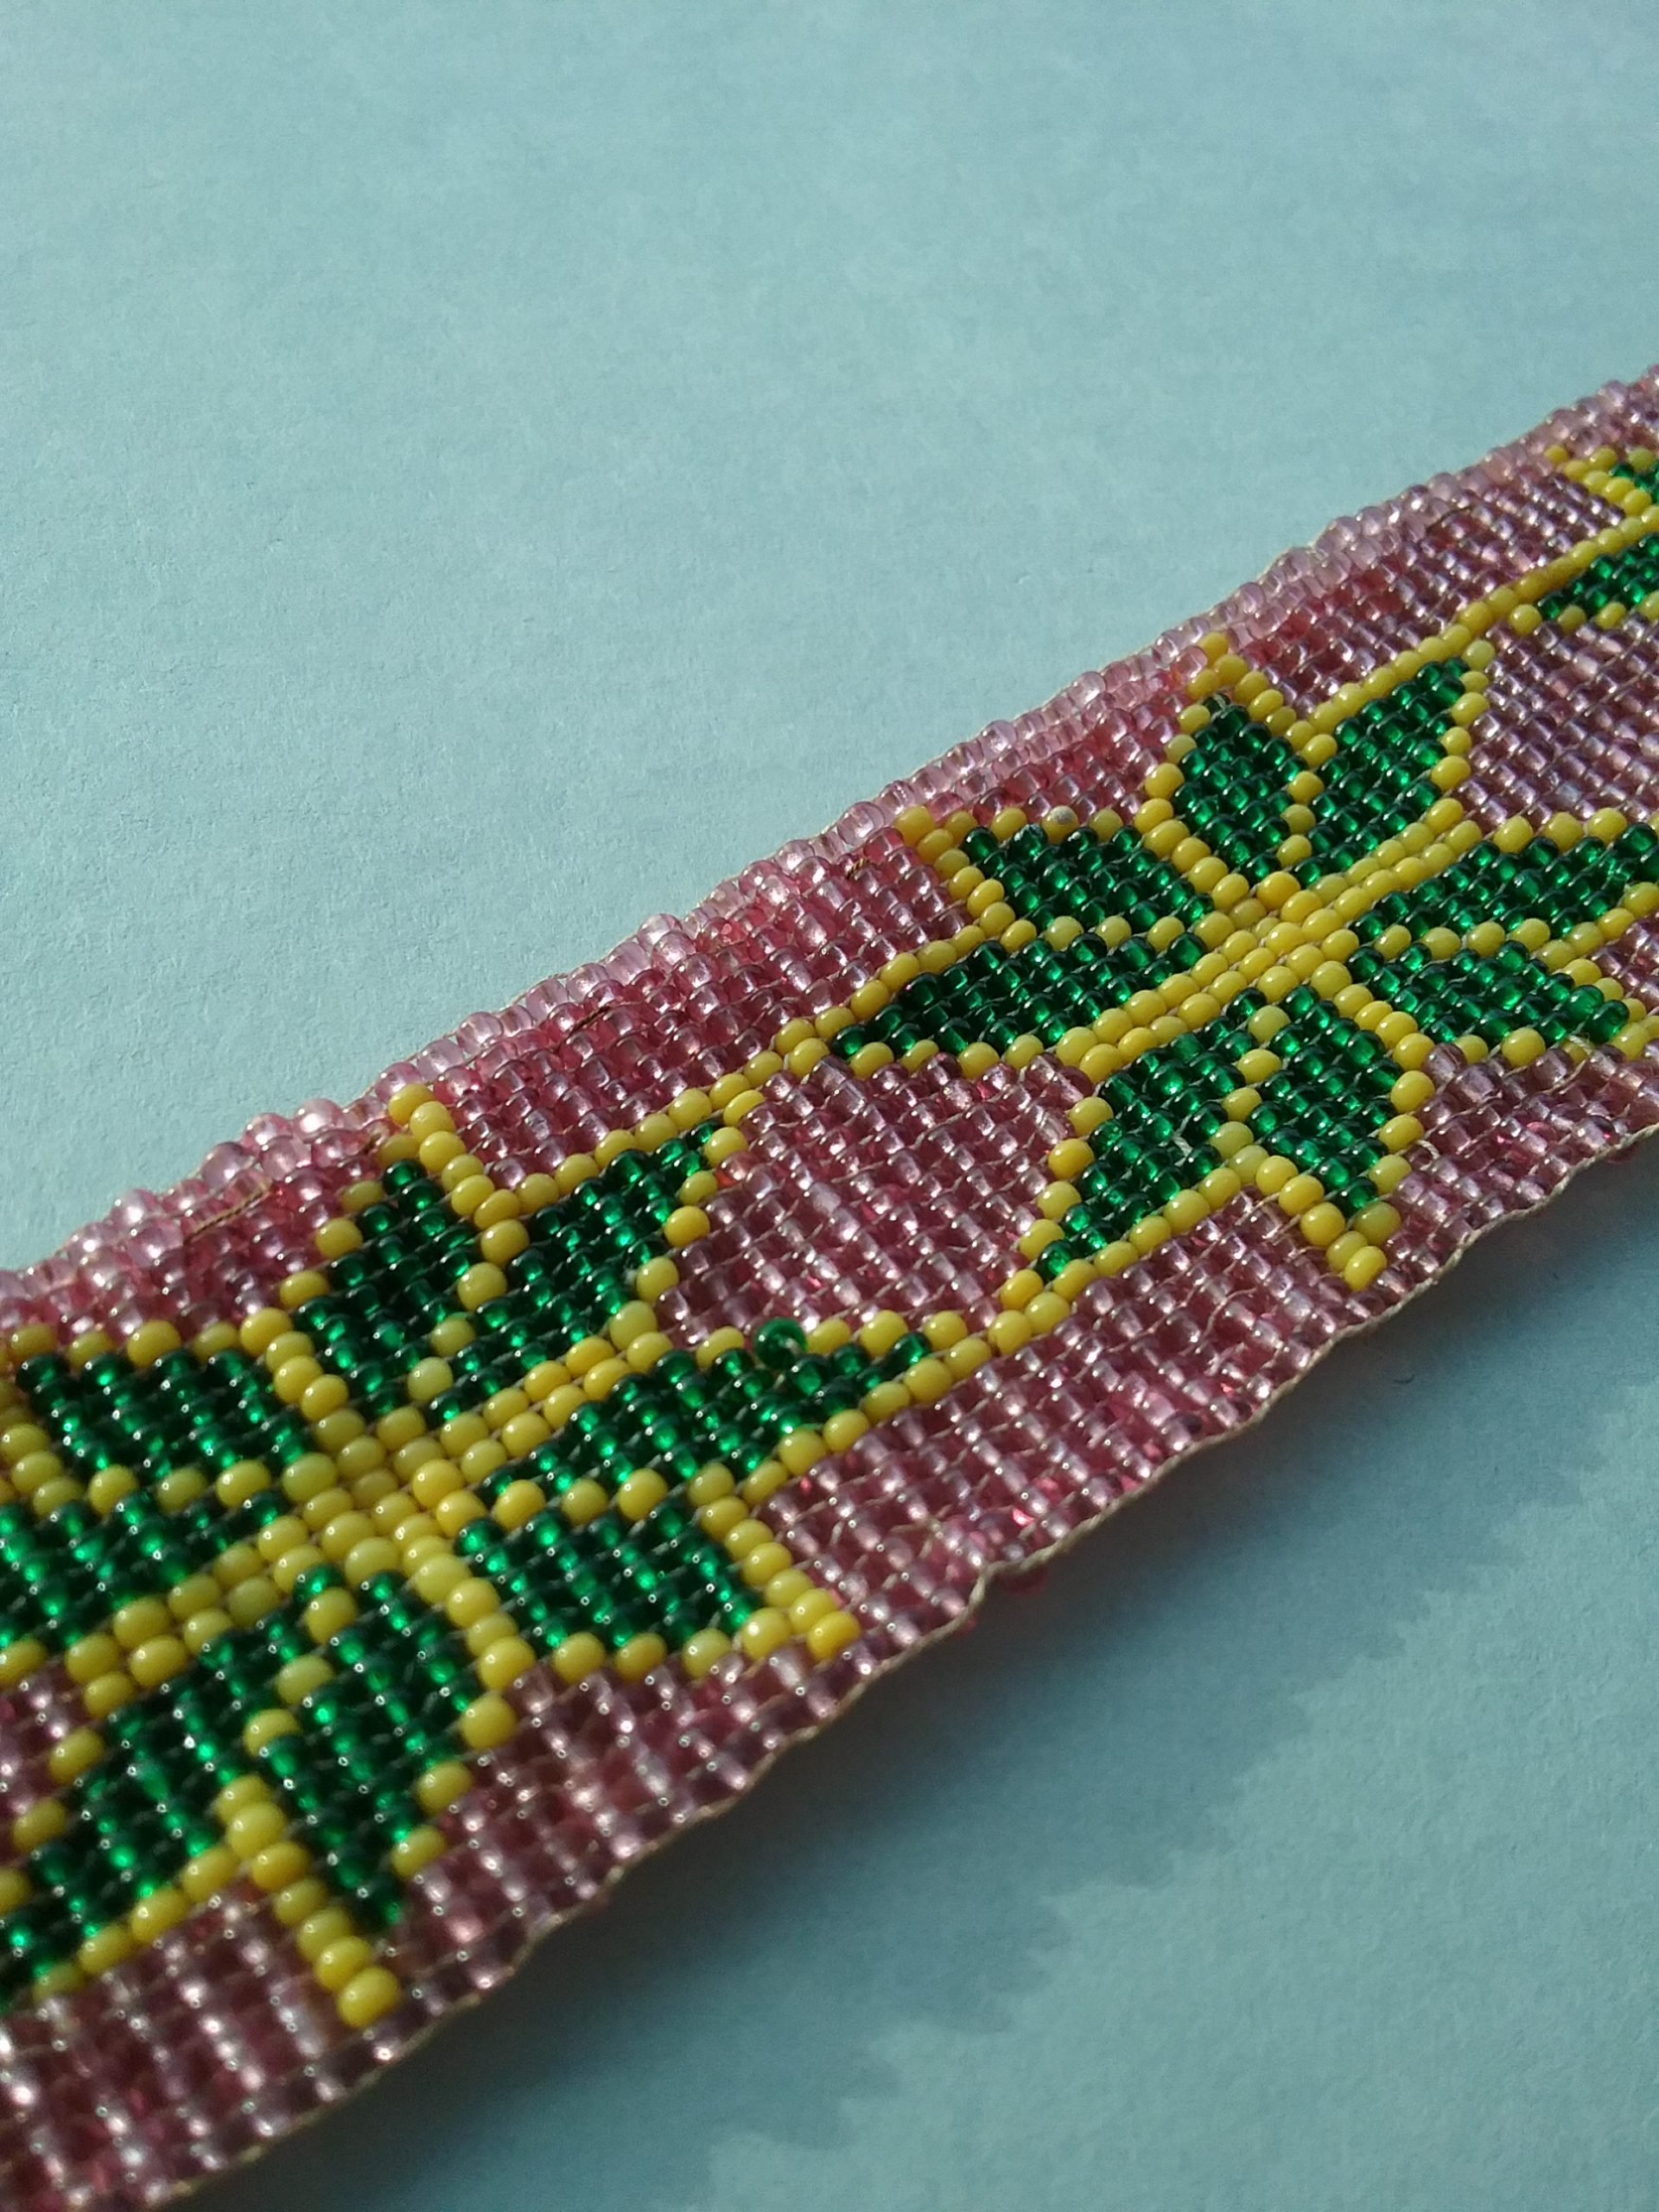 Detail of beaded band: Loom-woven beaded band with pink, green, and yellow seed beads. MCHS collections, #1945.76.9.